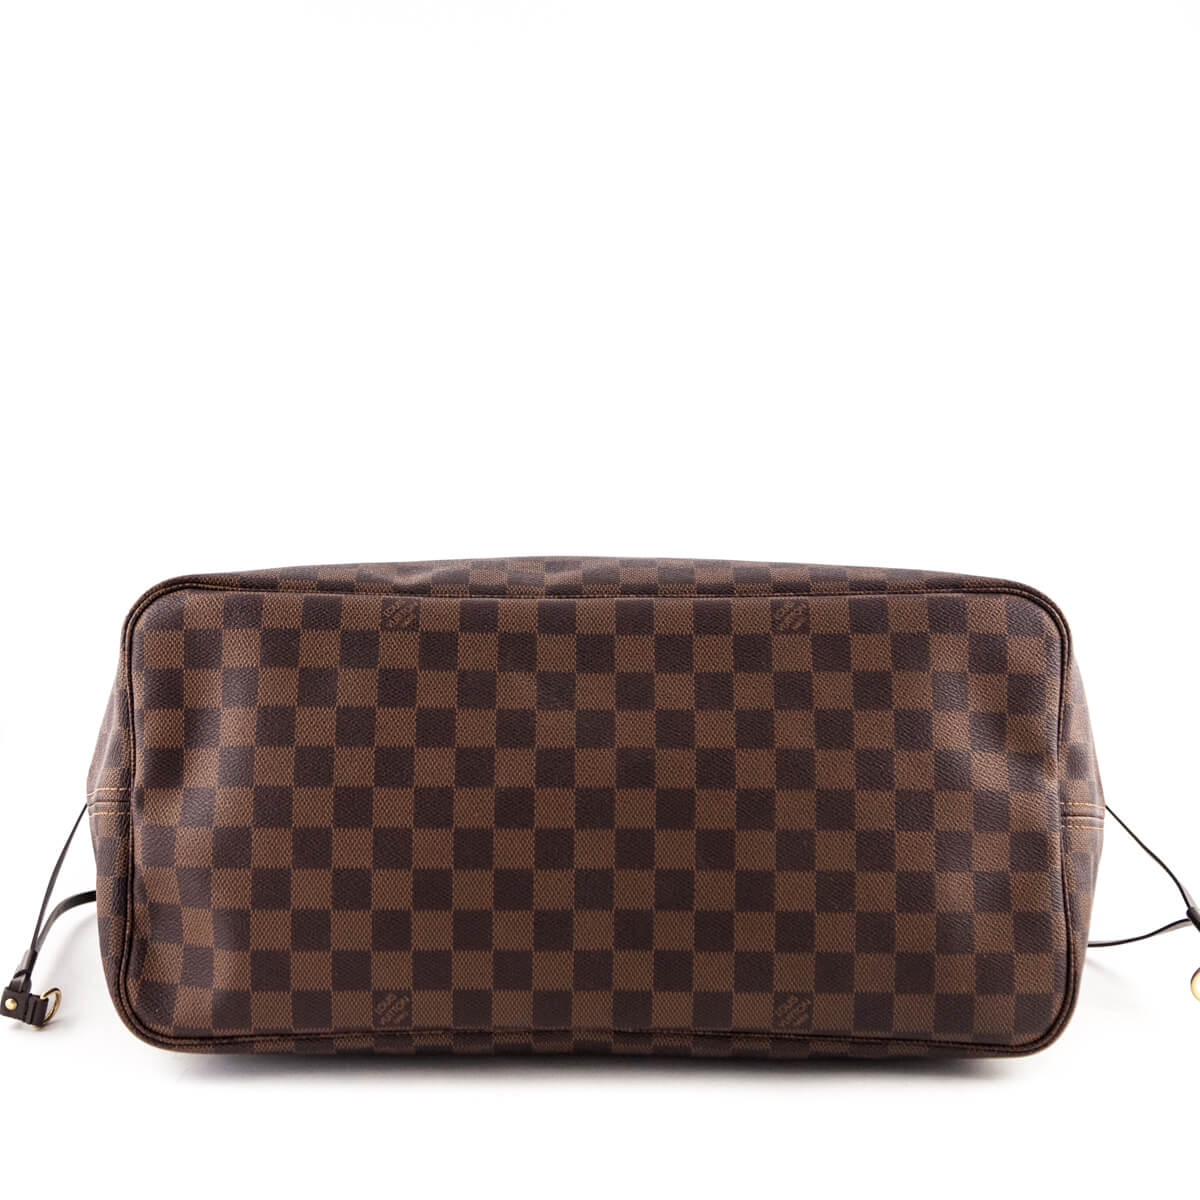 025ee5a0f9ff ... Louis Vuitton Damier Ebene Neverfull GM - LOVE that BAG - Preowned  Authentic Designer Handbags ...